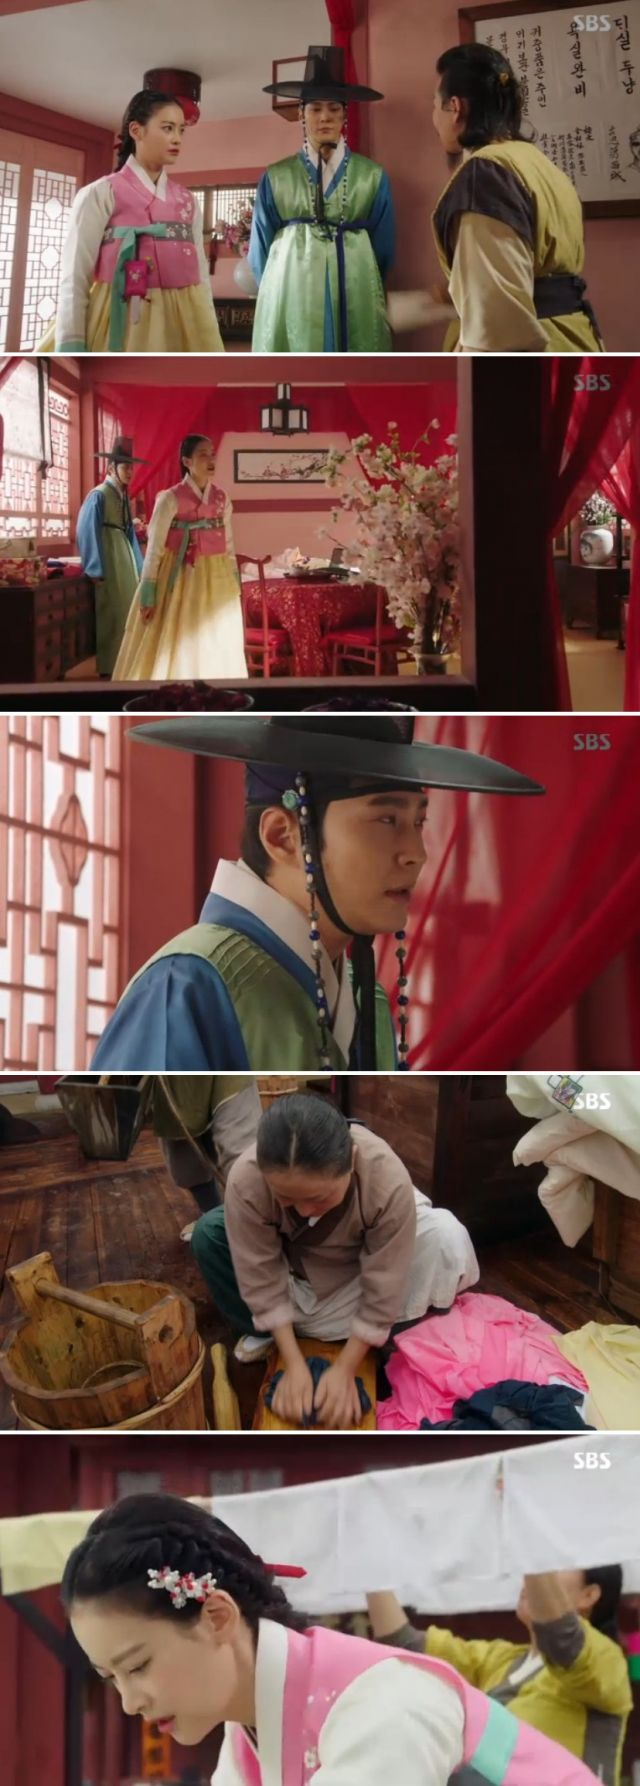 [Spoiler] Added episode 4 captures for the Korean drama 'My Sassy Girl – Drama'